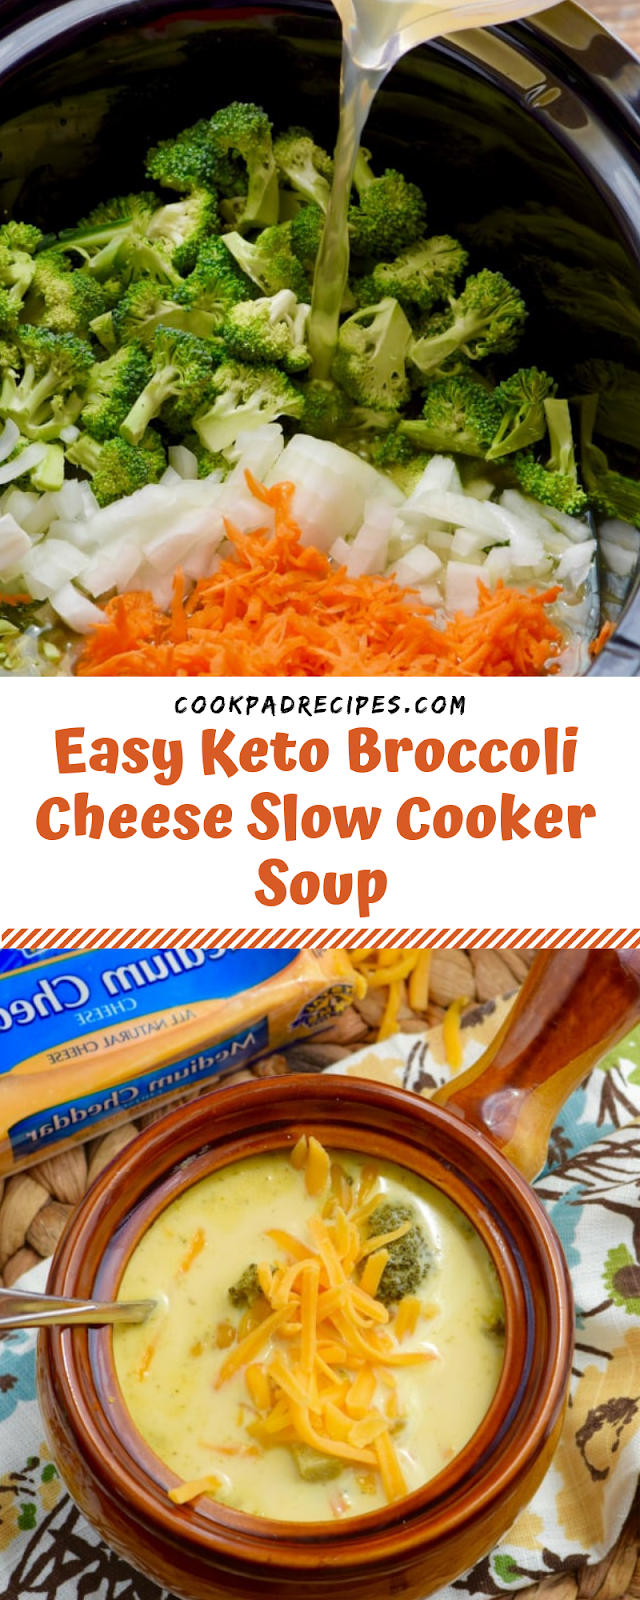 Easy Keto Broccoli Cheese Slow Cooker Soup!